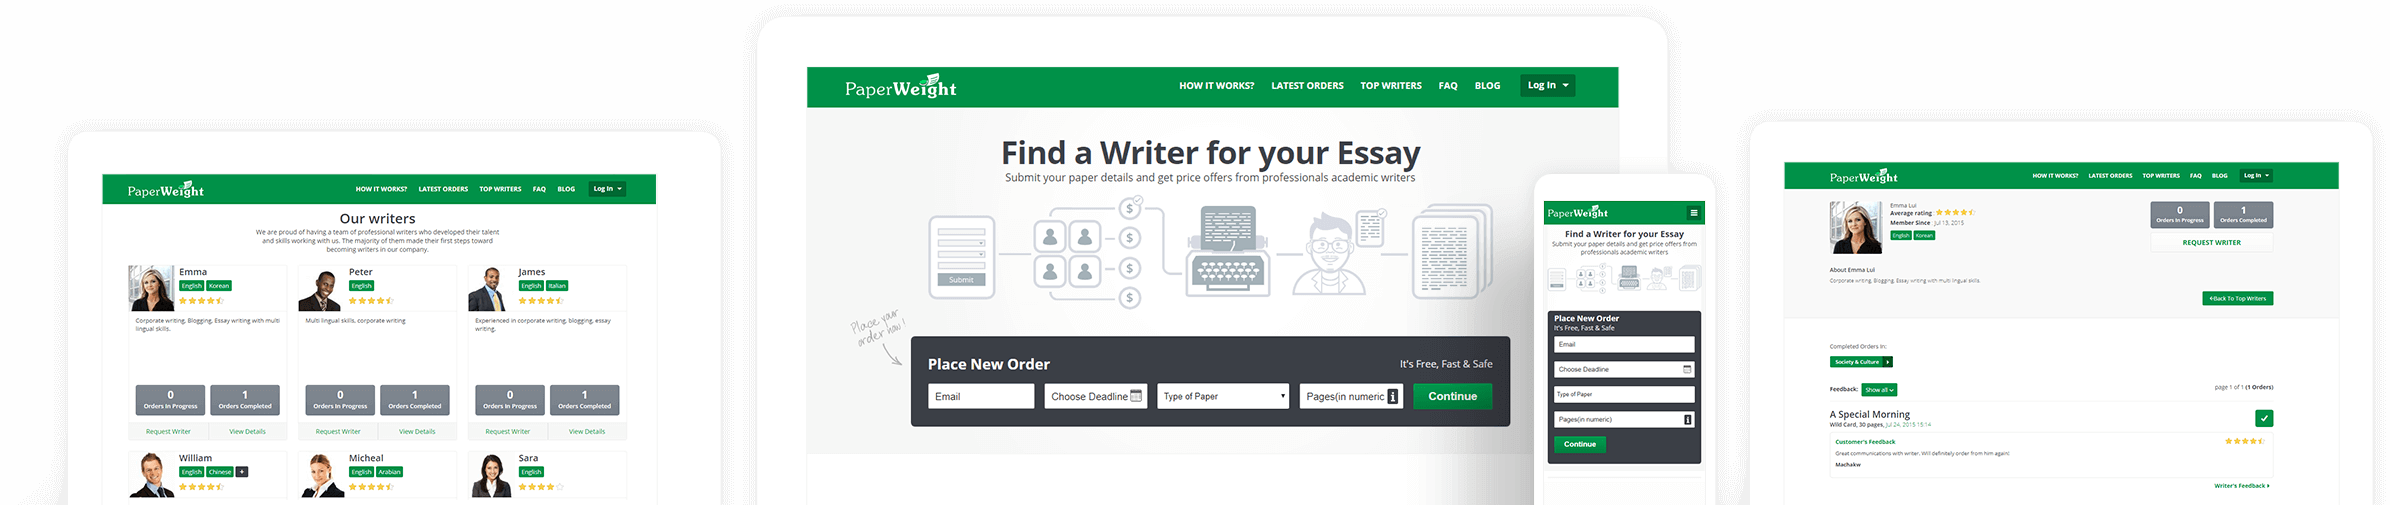 Paperweight Essay Writing Website Builder